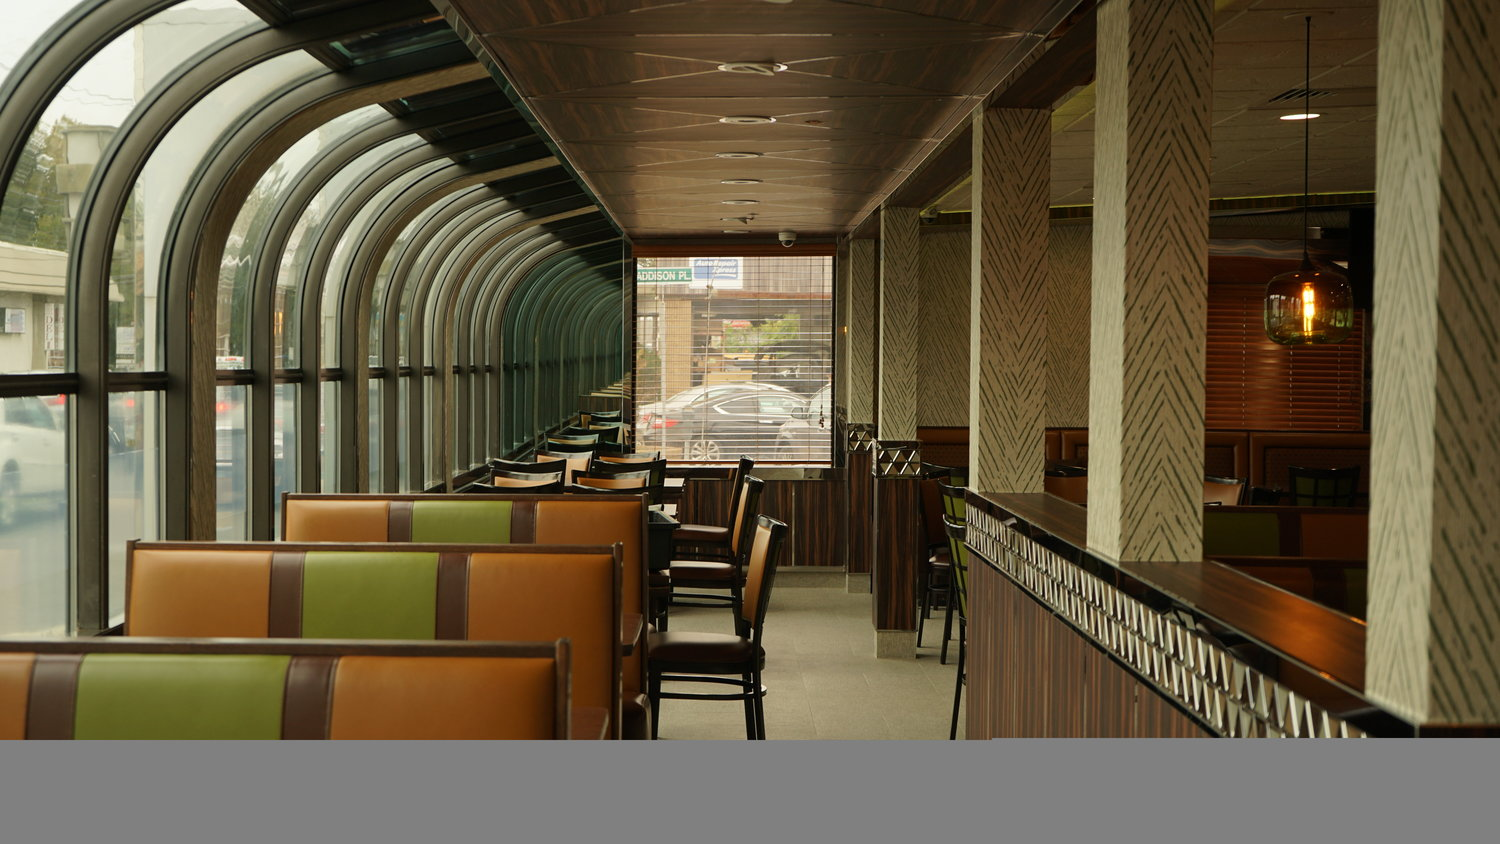 The diner's signature atrium-windowed seating area has been preserved.